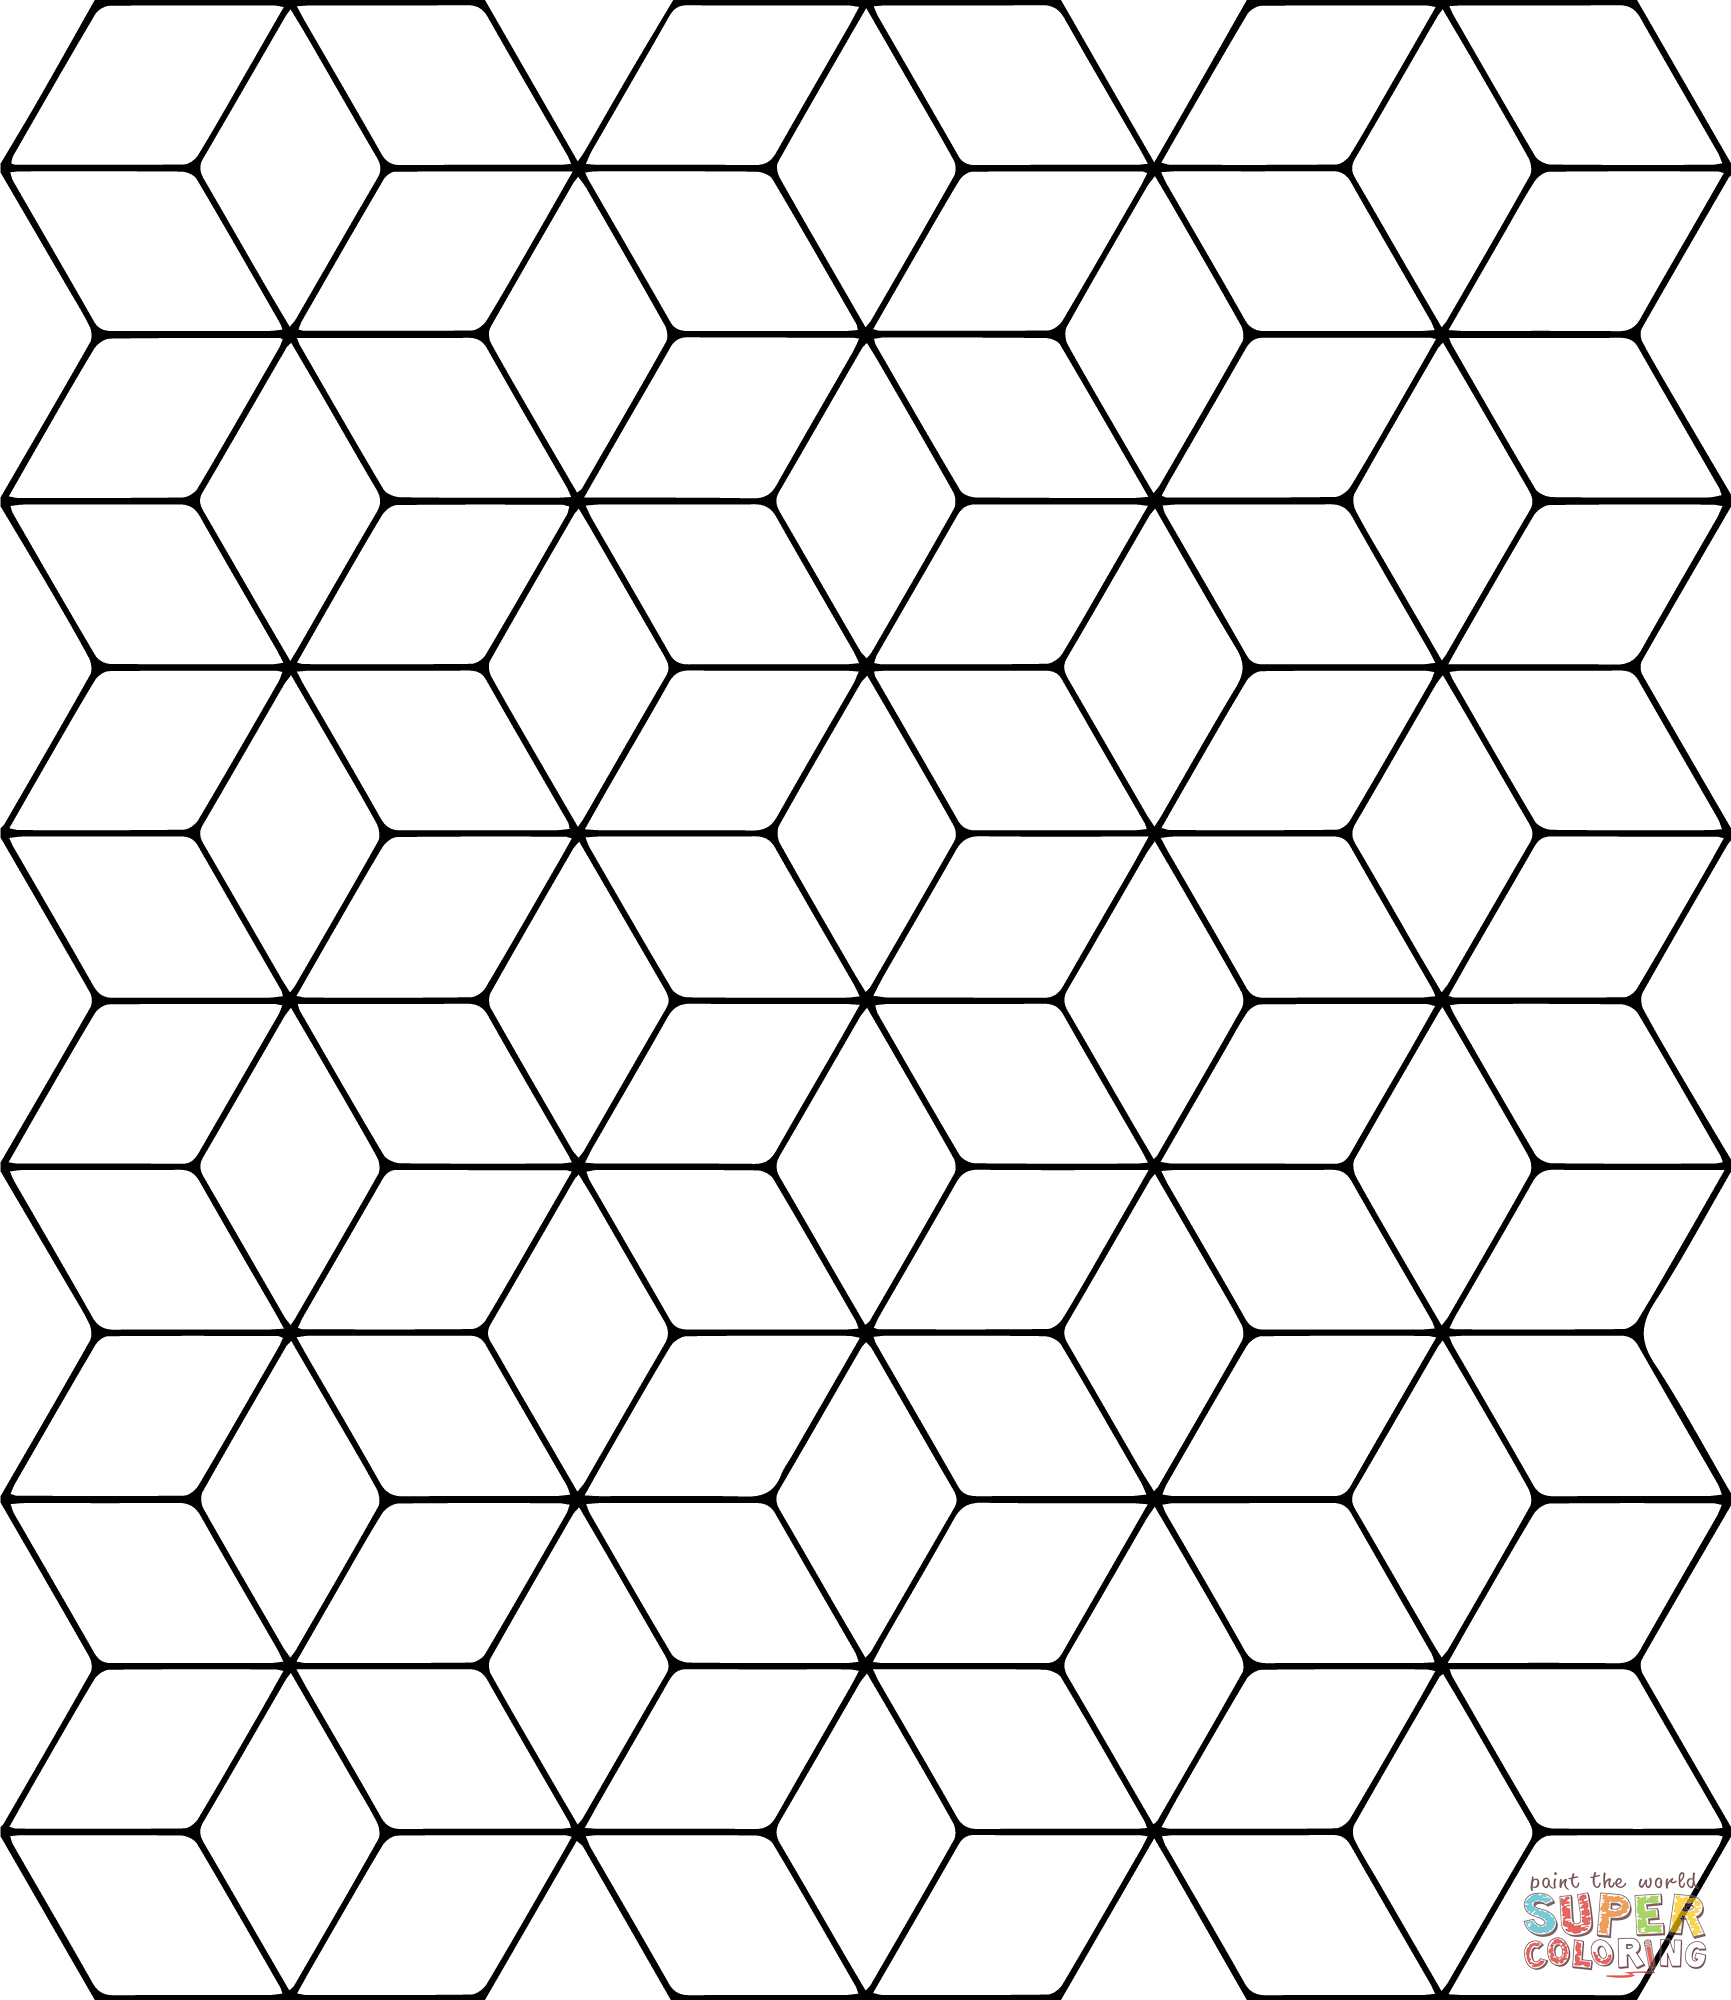 tessellation colouring pages tessellation with rhombus coloring page free printable colouring tessellation pages